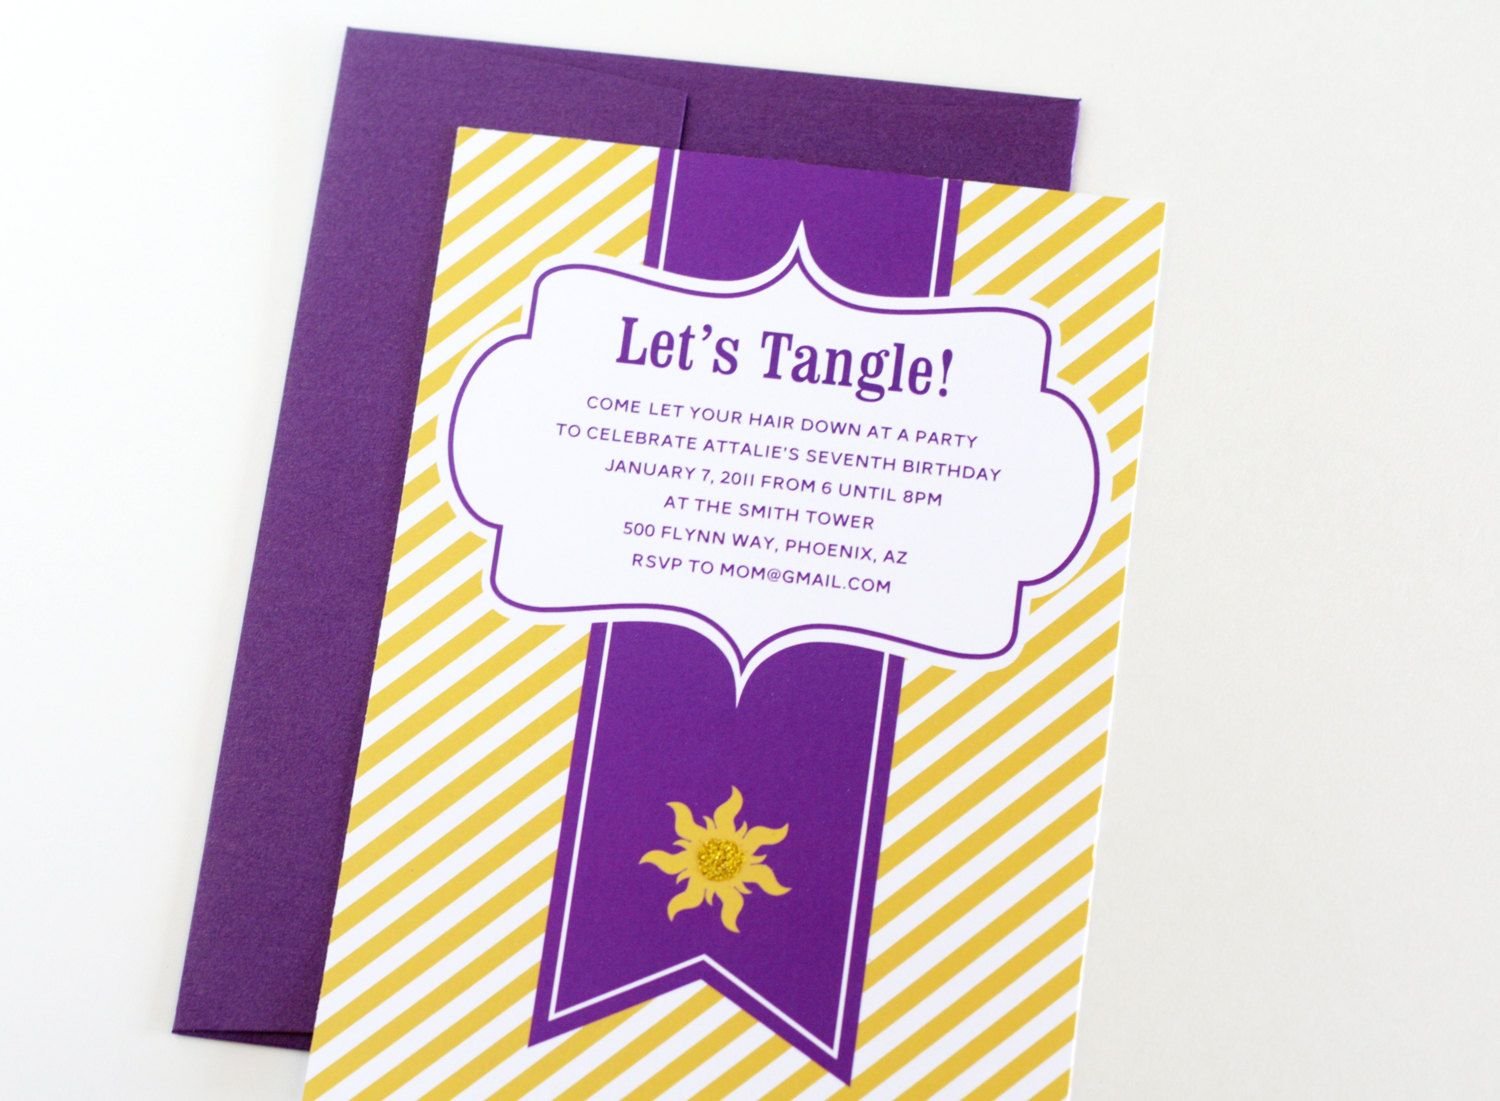 Rapunzel Tangled inspired Invitations Lets Tangle Personalized